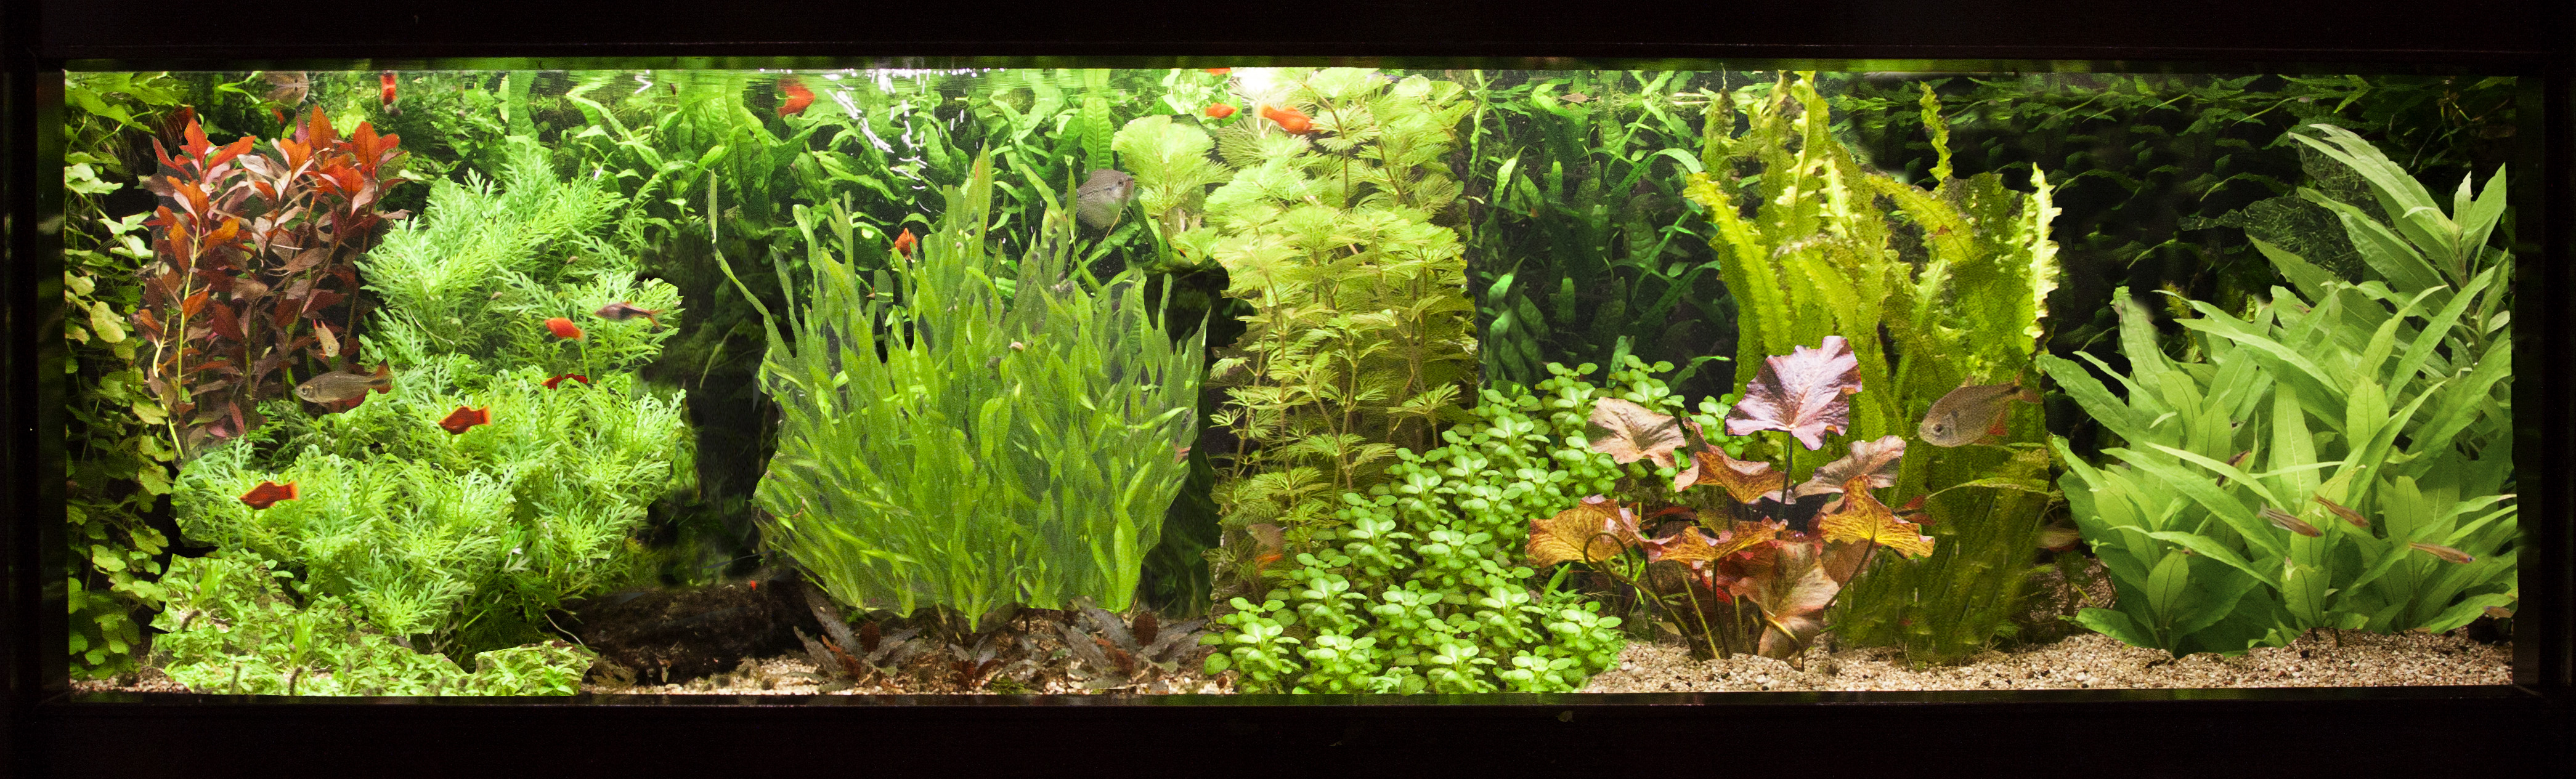 Workshop Aquarium inrichten  u2013Aponogeton